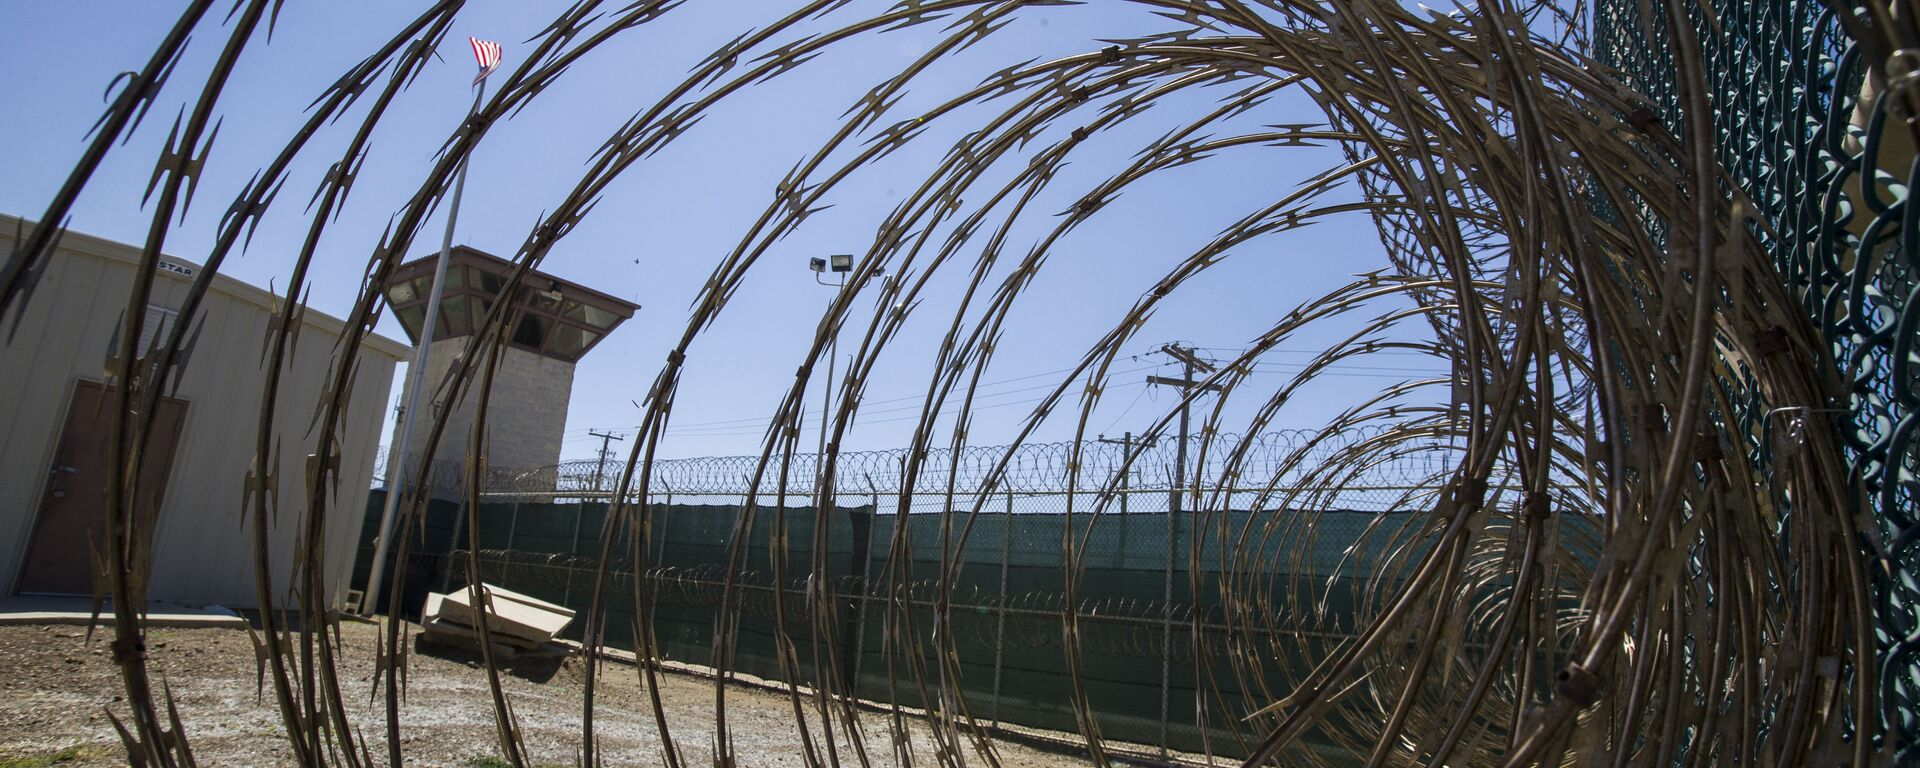 In this Wednesday, April 17, 2019 file photo reviewed by U.S. military officials, the control tower is seen through the razor wire inside the Camp VI detention facility in Guantanamo Bay Naval Base, Cuba. - Sputnik International, 1920